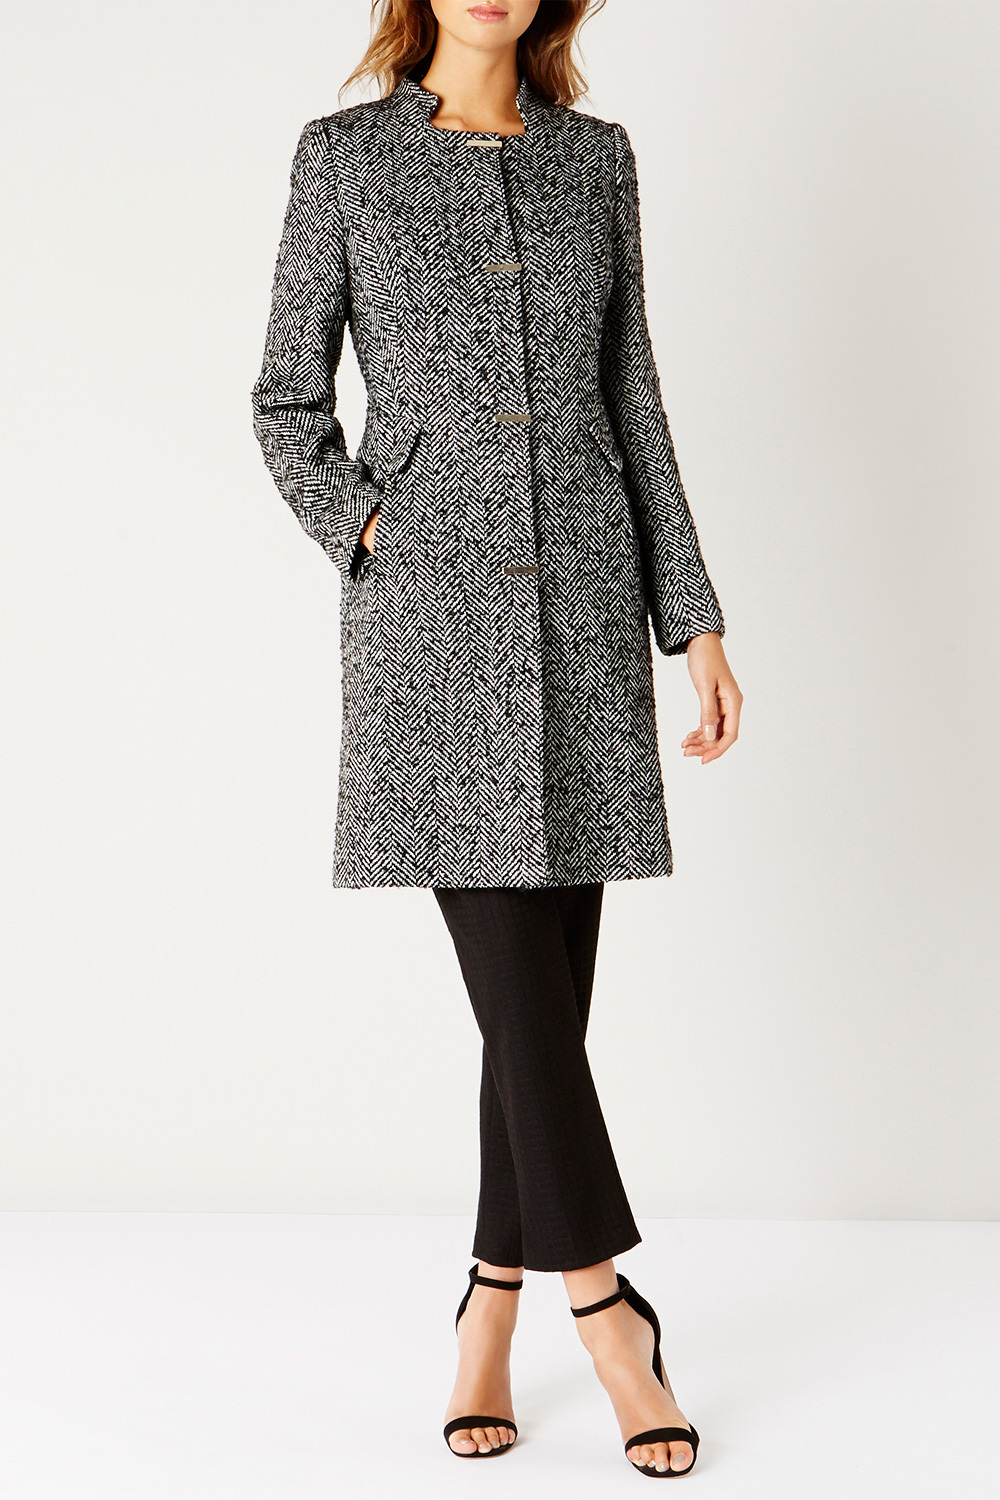 Rhea Mono Coat - collar: round collar/collarless; style: single breasted; pattern: herringbone/tweed; length: mid thigh; predominant colour: mid grey; occasions: work, creative work; fit: tailored/fitted; fibres: wool - mix; sleeve length: long sleeve; sleeve style: standard; collar break: high; pattern type: fabric; pattern size: standard; texture group: woven bulky/heavy; wardrobe: investment; season: a/w 2016